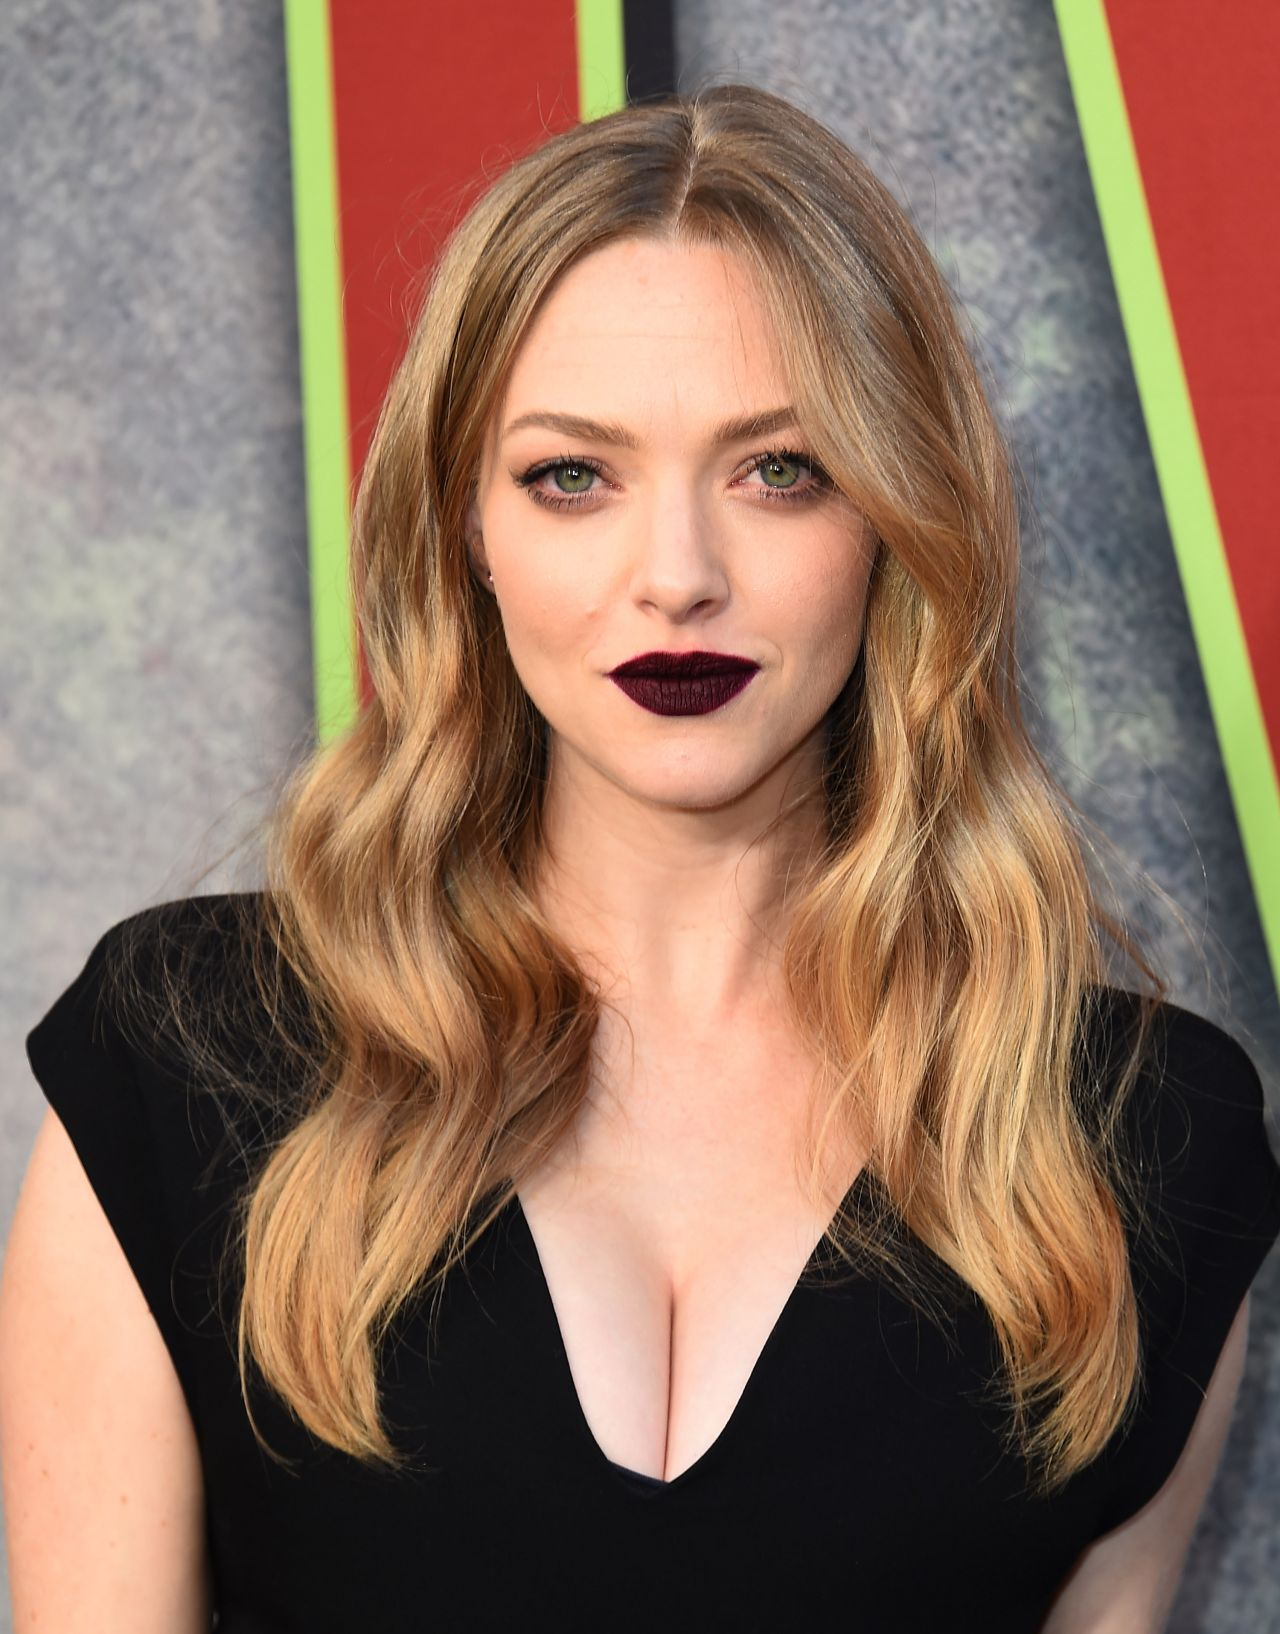 Amanda Seyfried Latest Photos Celebmafia